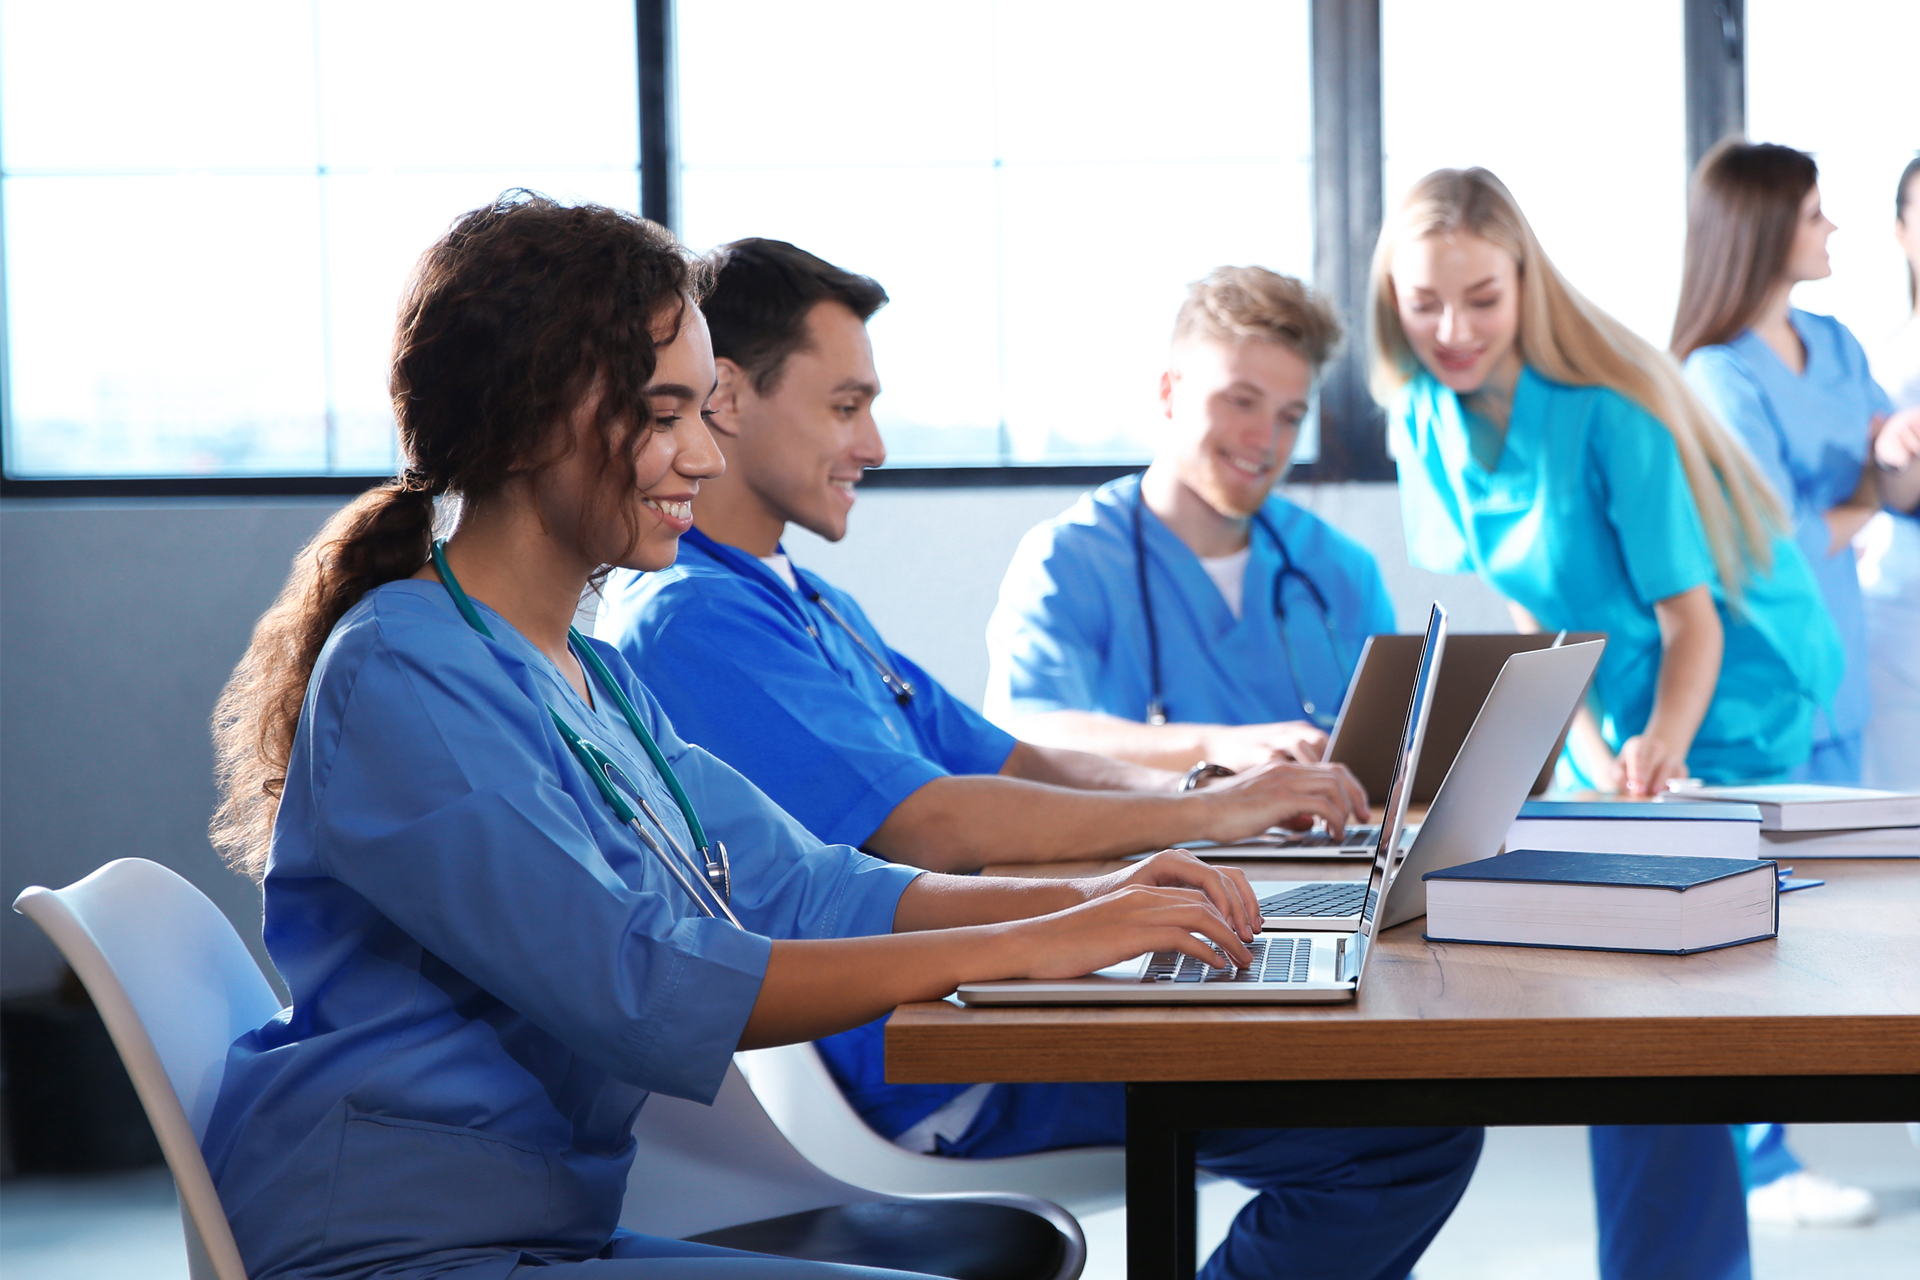 Group of nurses working at laptops in conference room